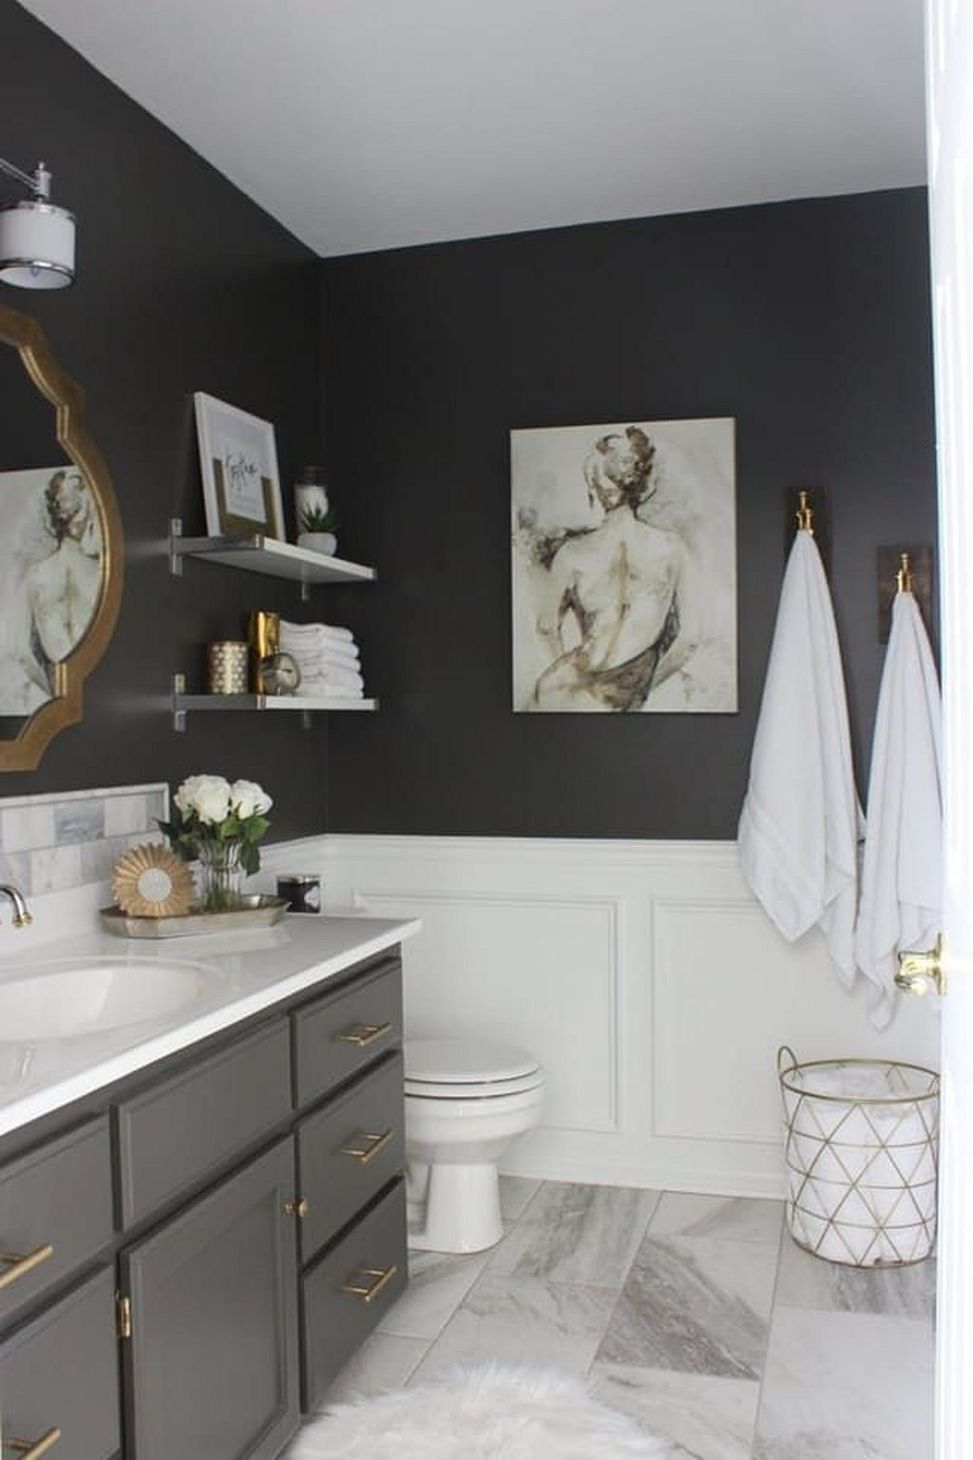 insanely cool small master bathroom remodel ideas on a